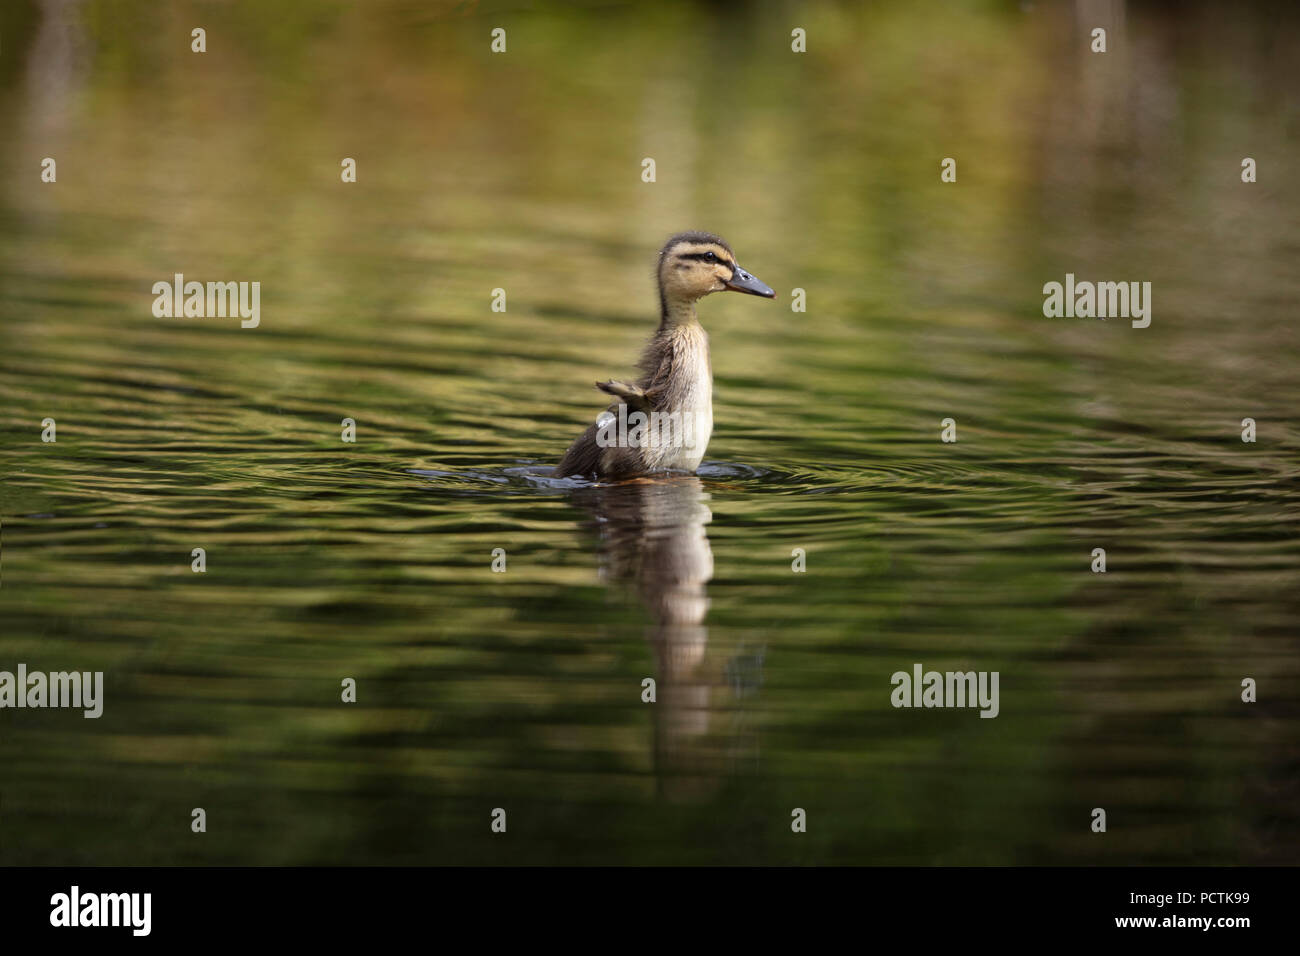 cute little duckling flapping very tiny wings - Stock Image